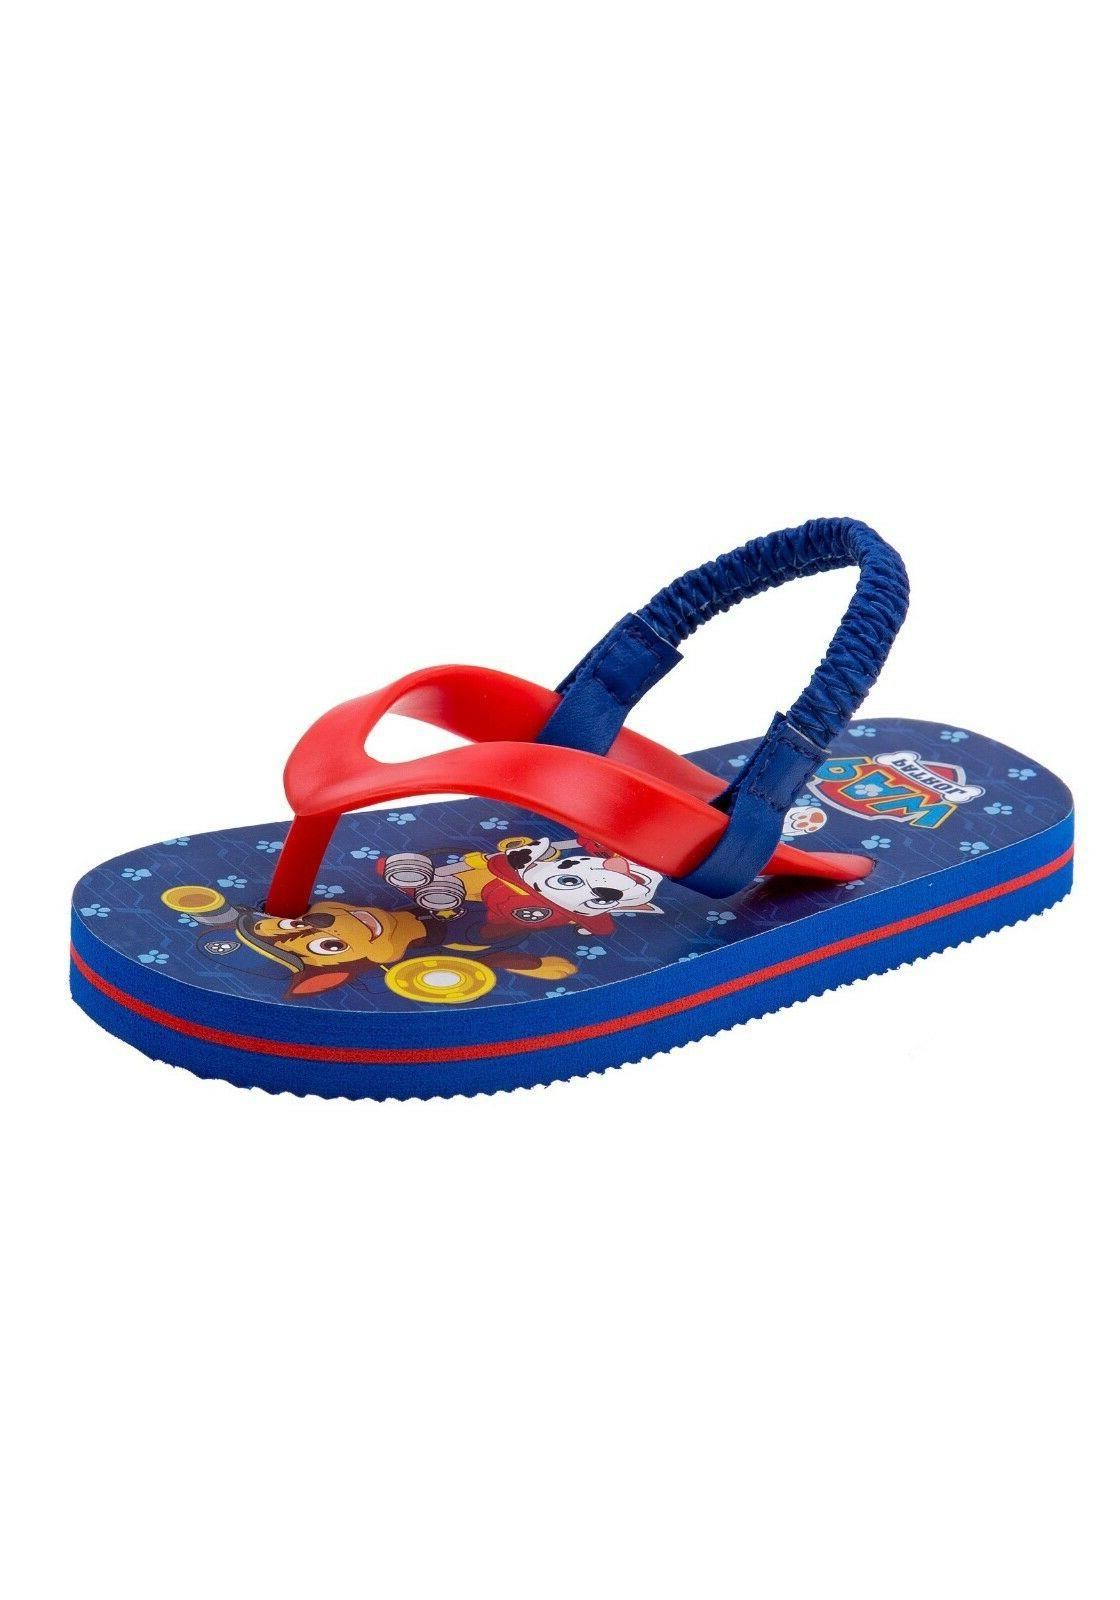 Paw Patrol Kids Sandals Shoes New